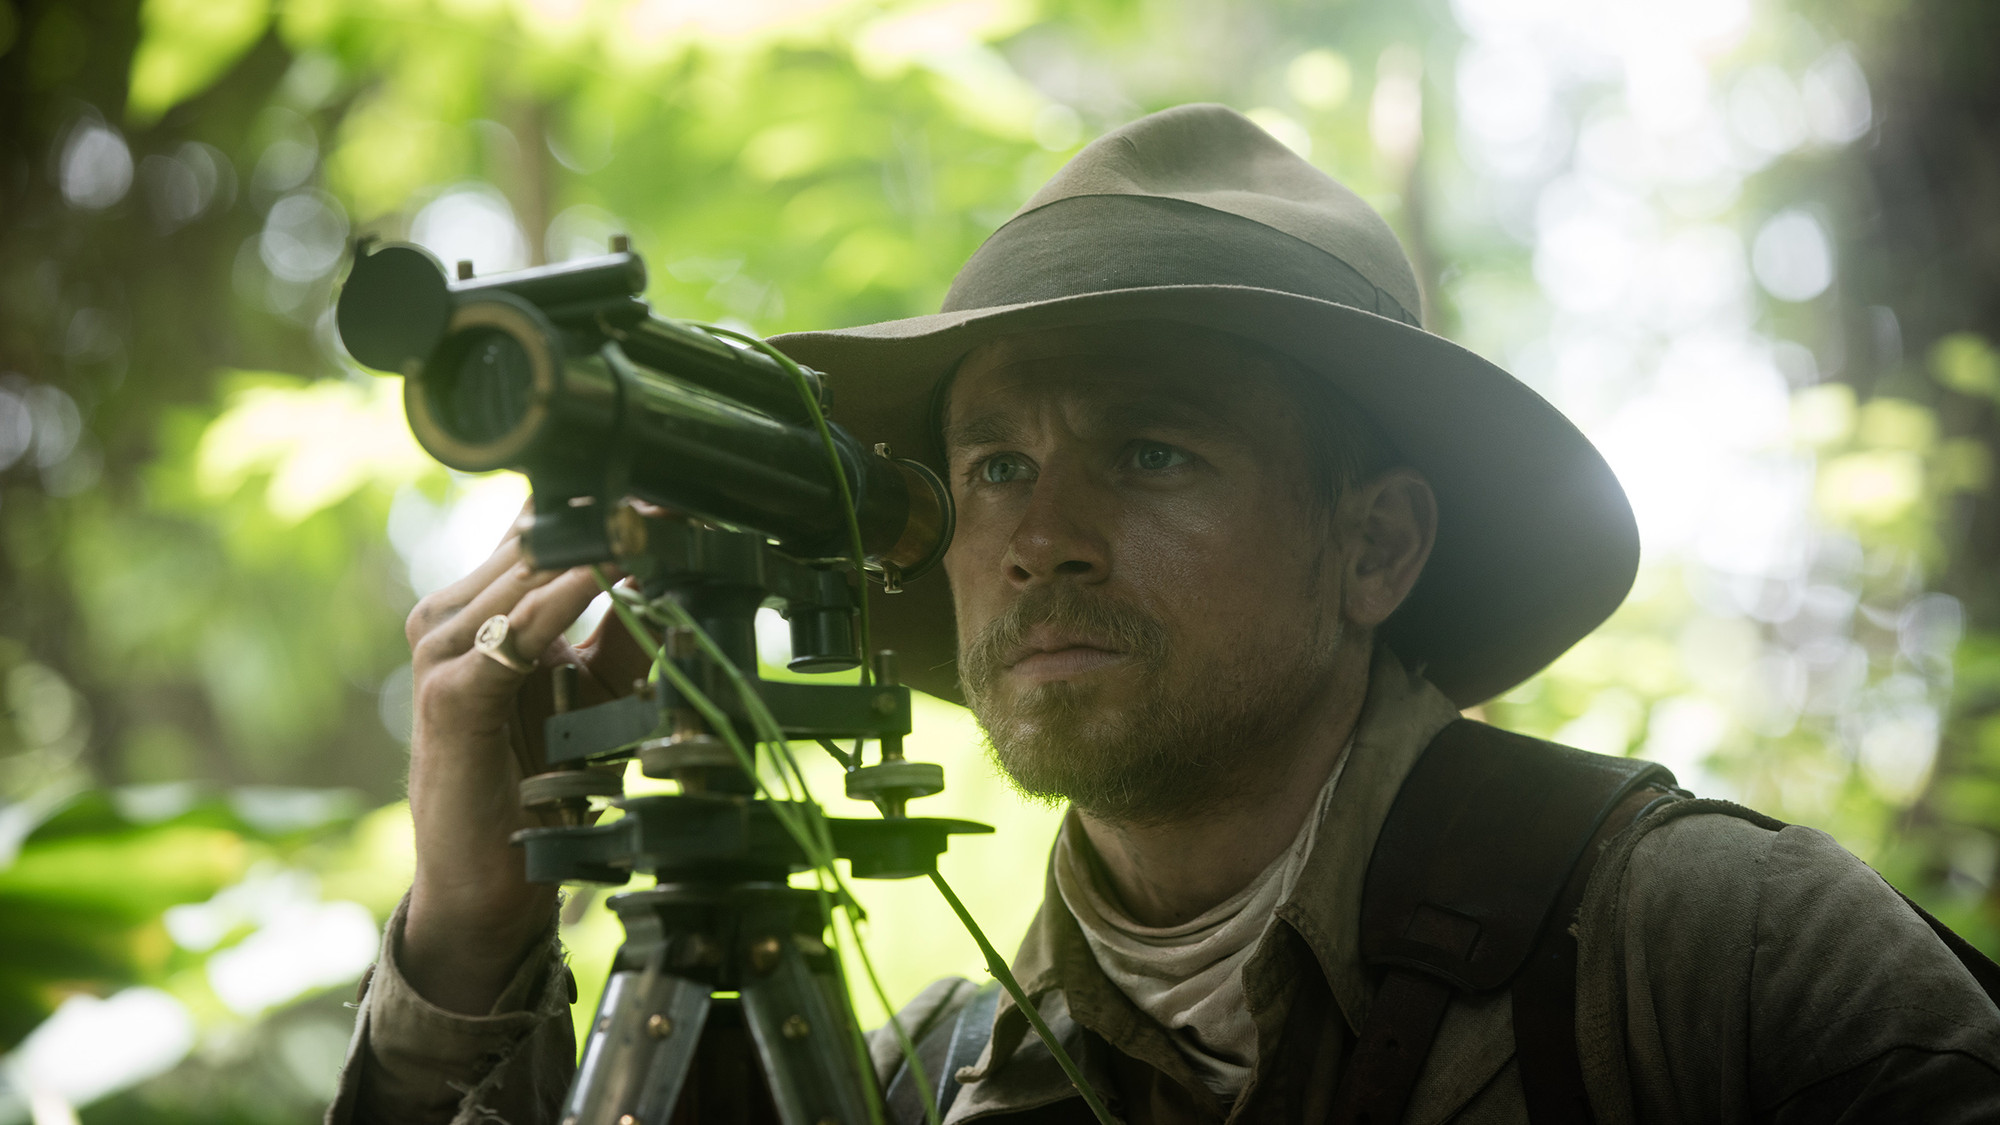 The Lost City of Z. 2017. USA. Directed by James Gray. Courtesy of Amazon Studios